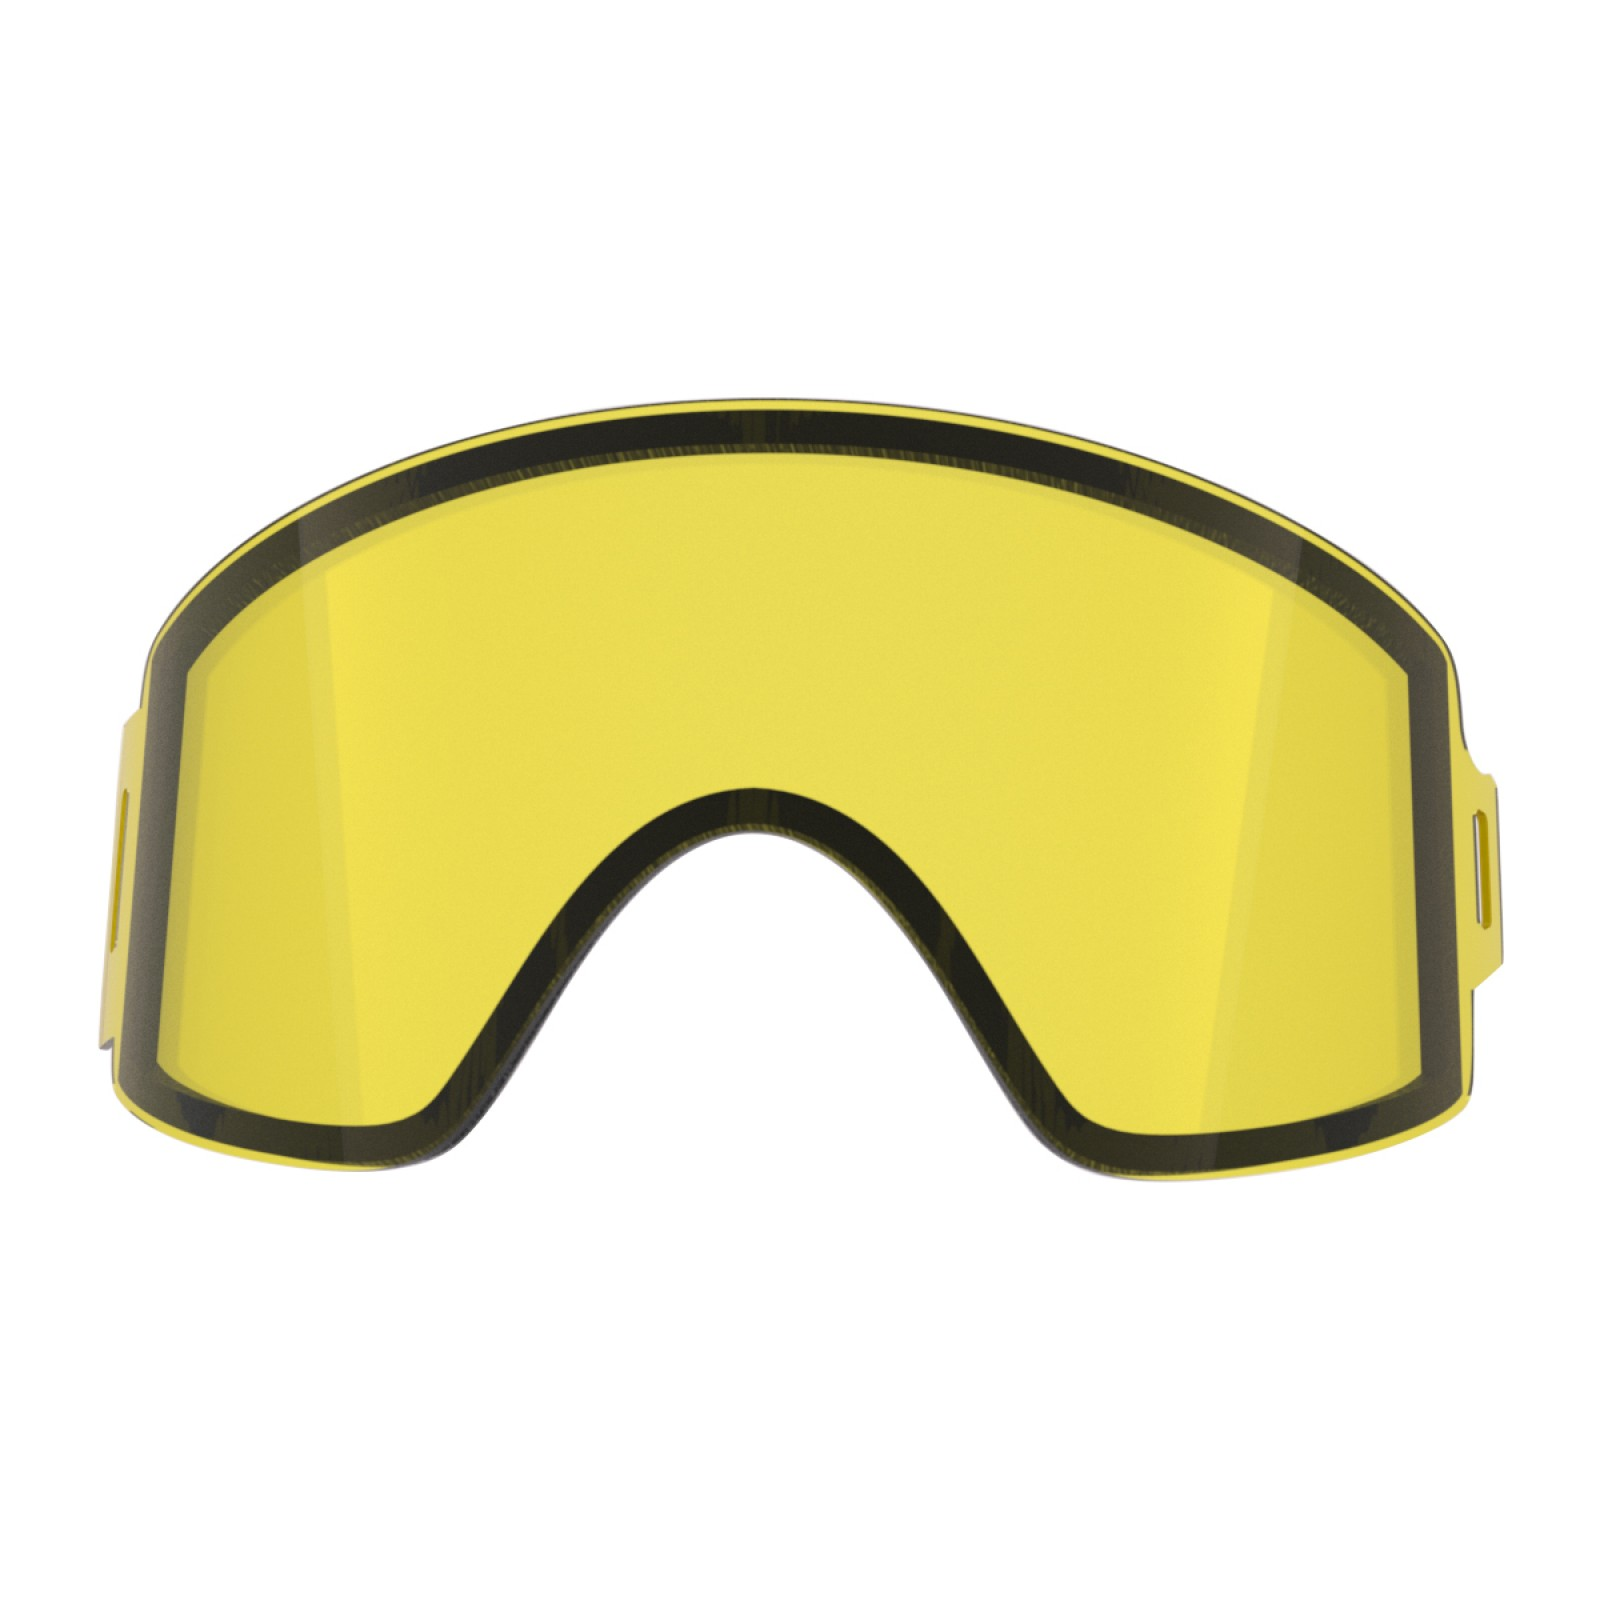 YELLOW lens for  Shift goggle